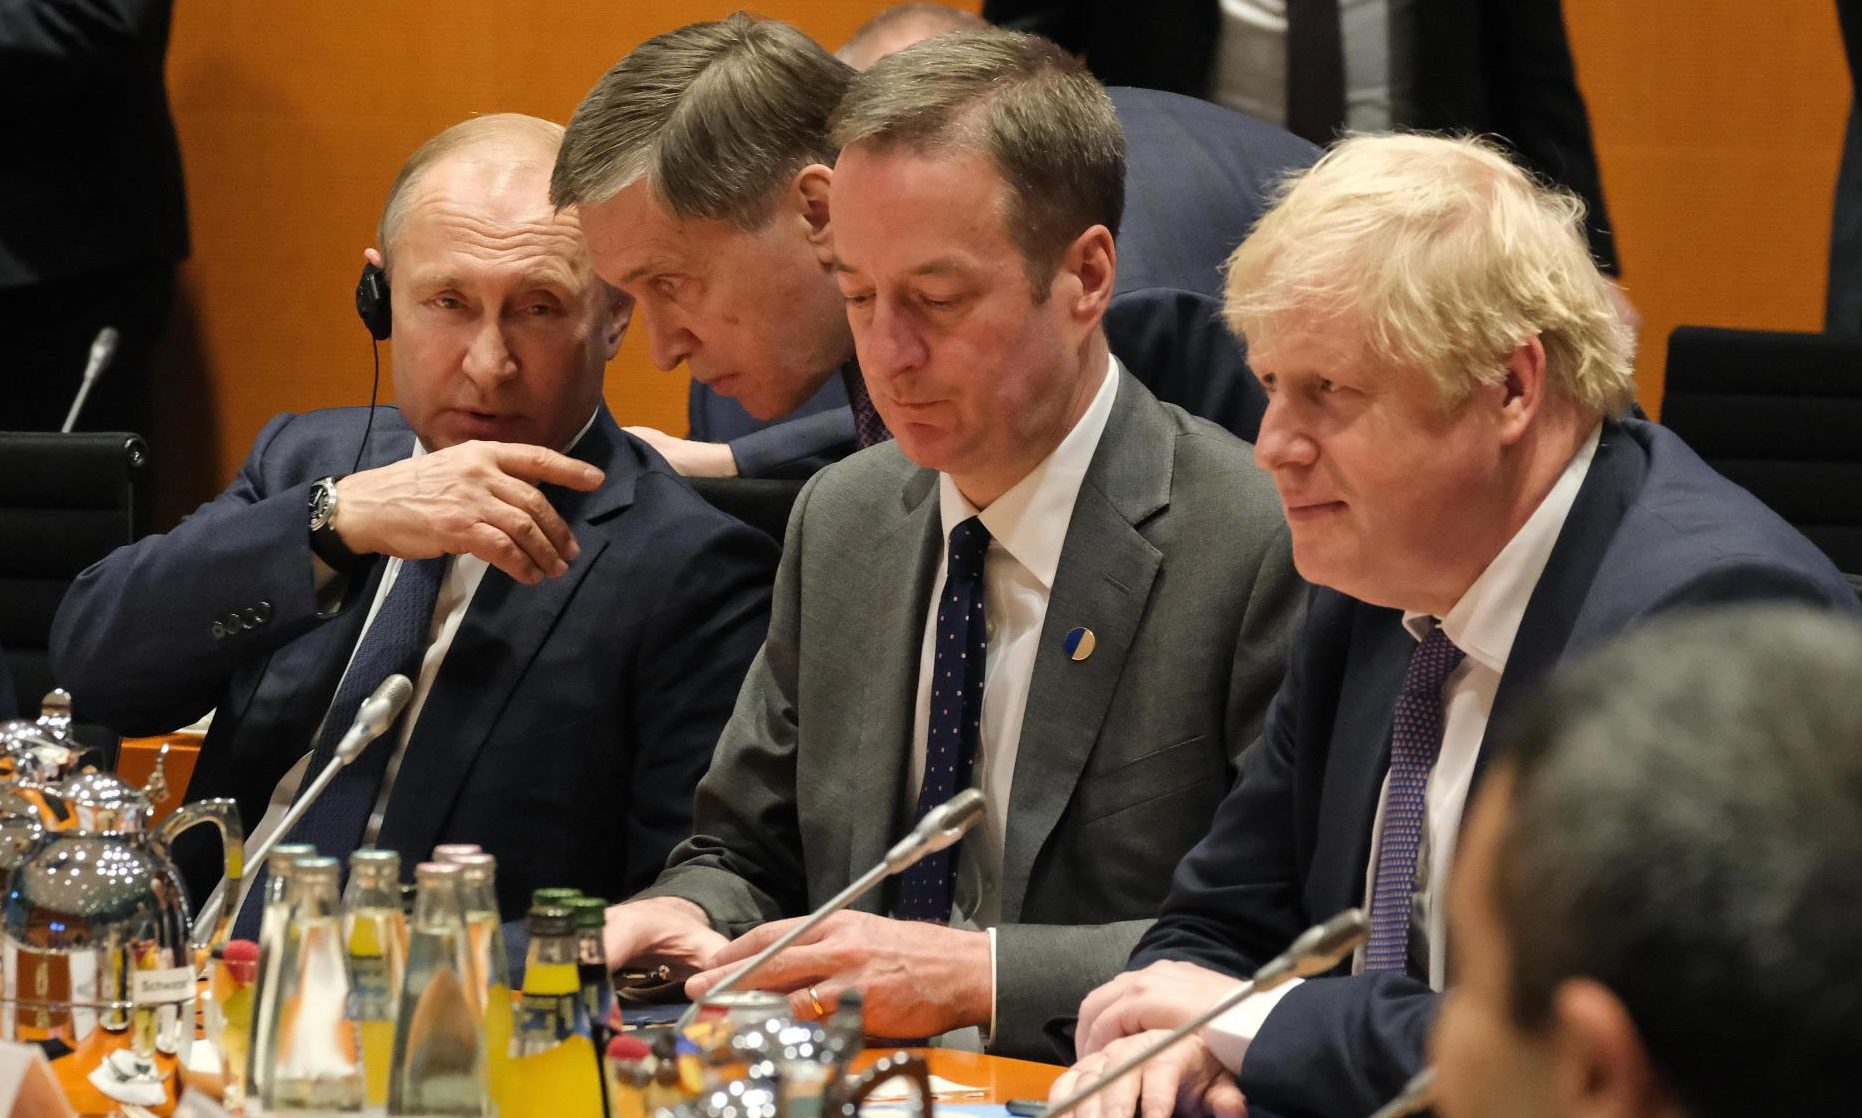 St Andrews University expert Professor Phil O'Brien says Russian President Vladimir Putin, left, sees weakening the Western alliance as being in his interest.